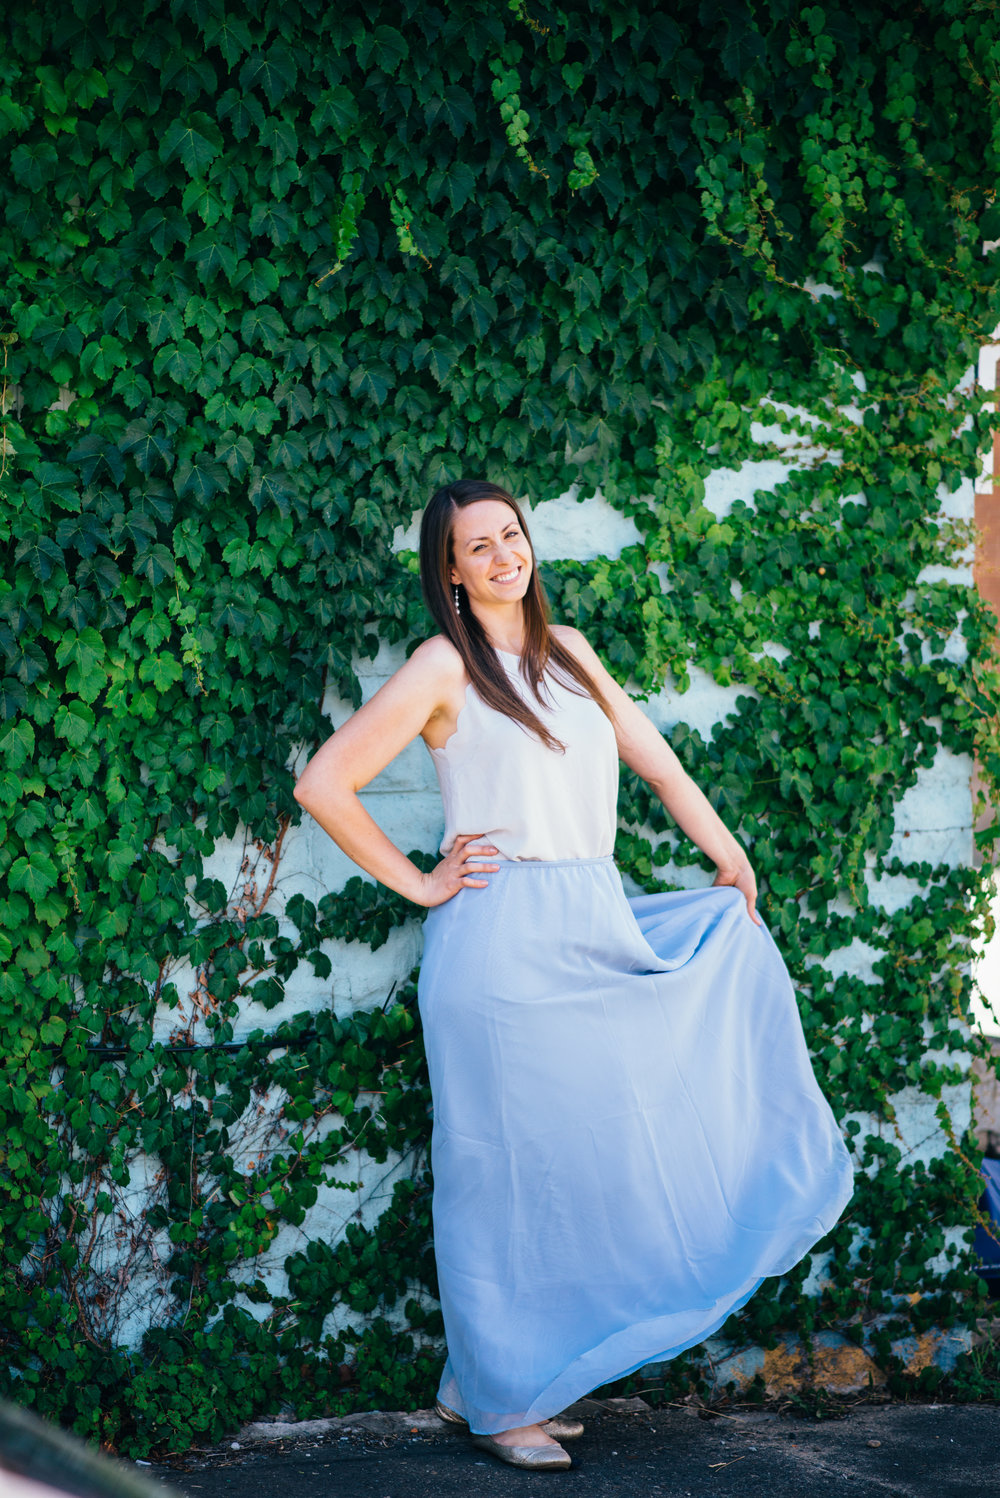 Bridesmaid in two piece bridesmaid dress with a periwinkle or sky blue skirt and grey spaghetti strap crop top standing in front of an ivy wall